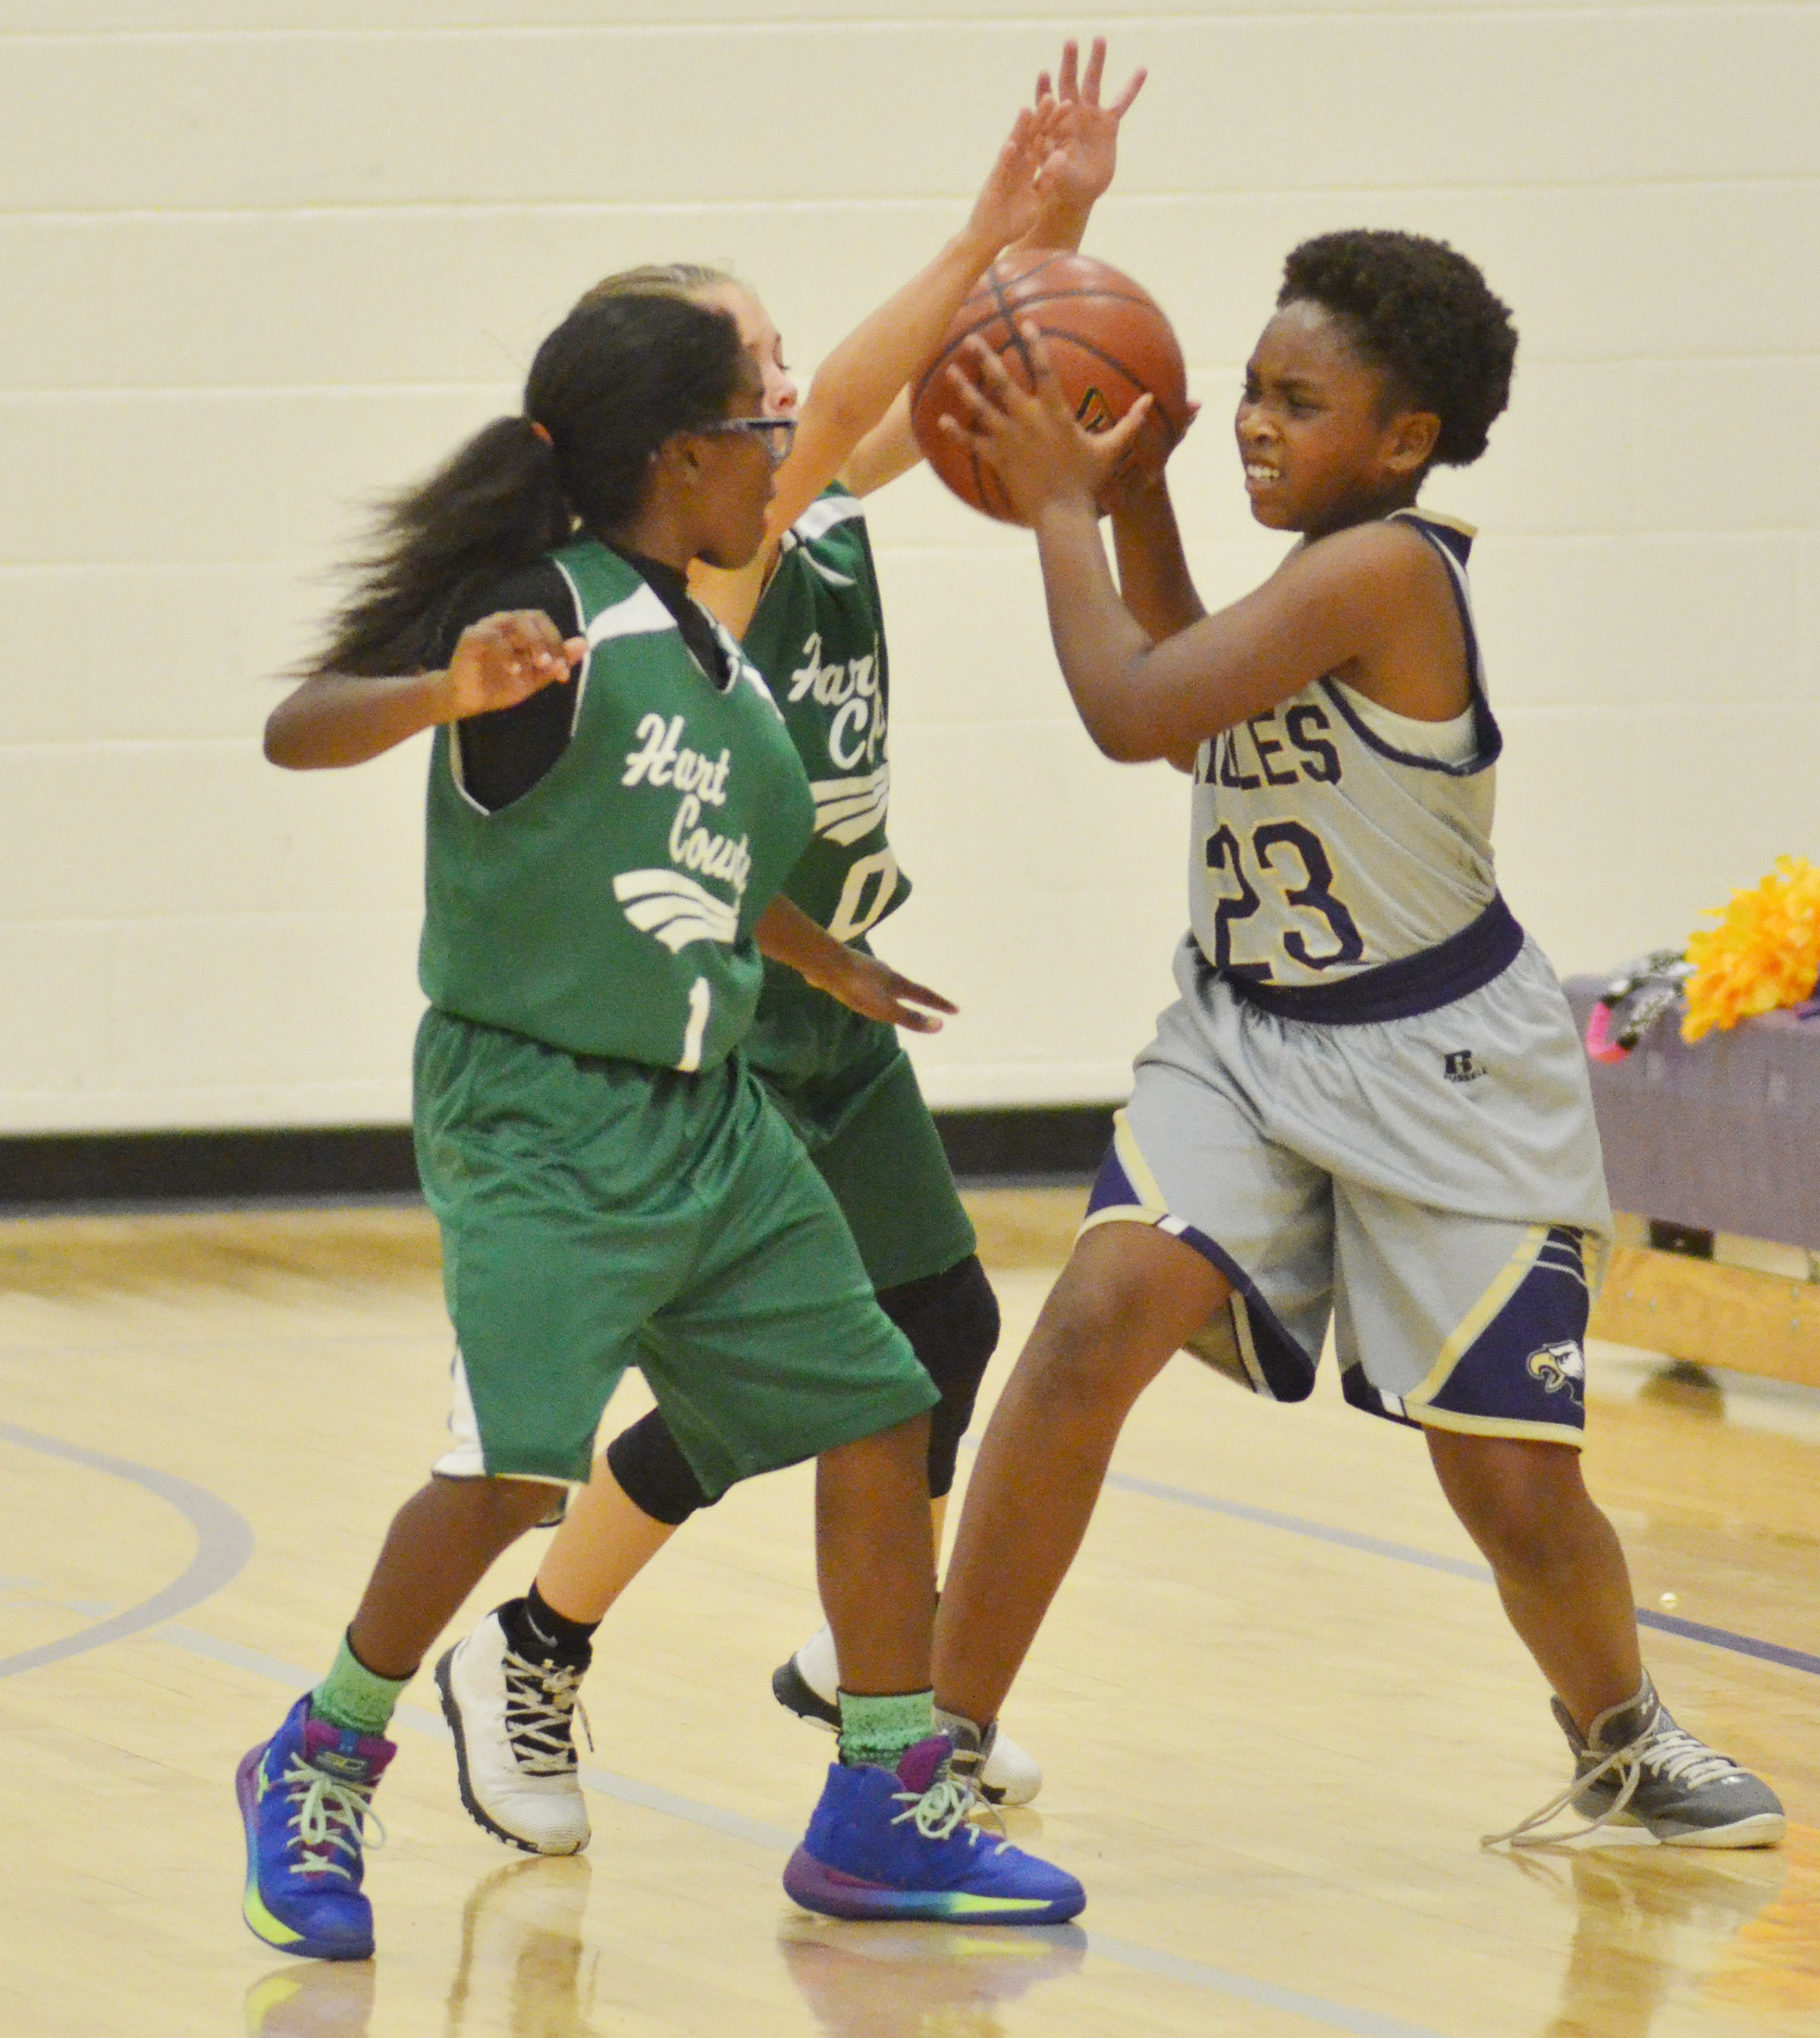 Campbellsville Elementary School fifth-grader Ta'Zaria Owens protects the ball.